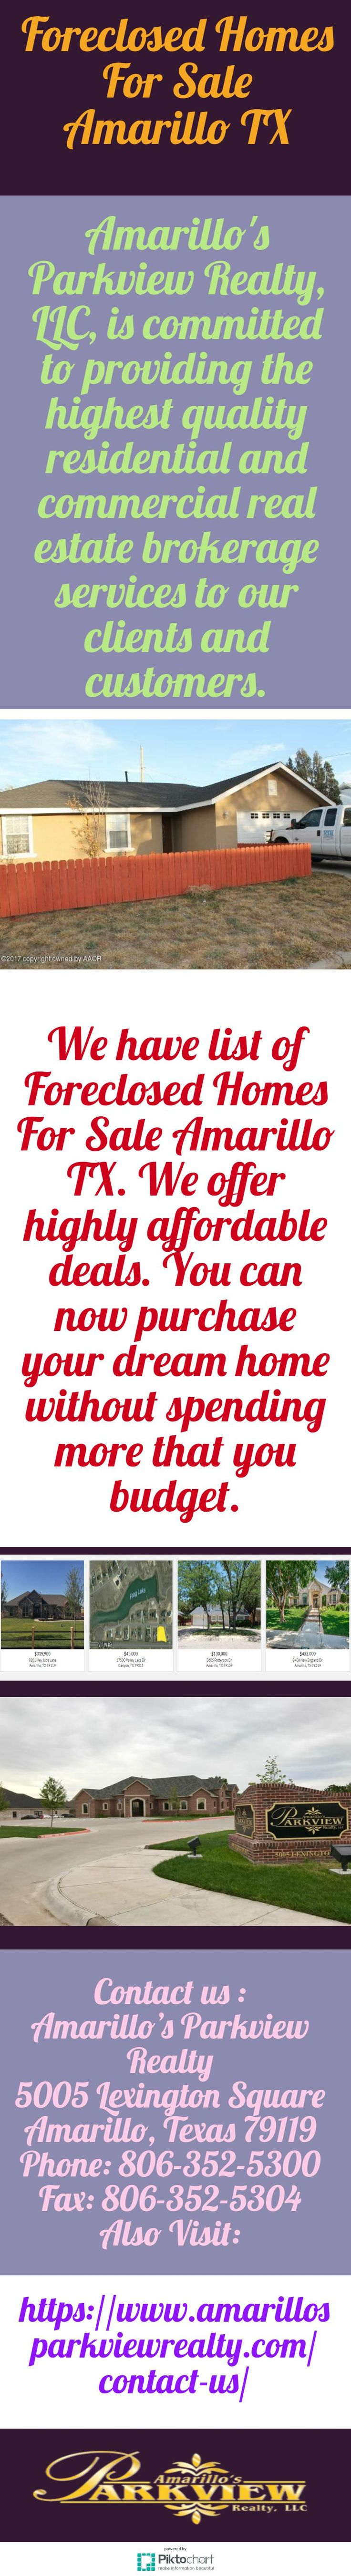 We have list of Foreclosed Homes For Sale Amarillo TX We offer